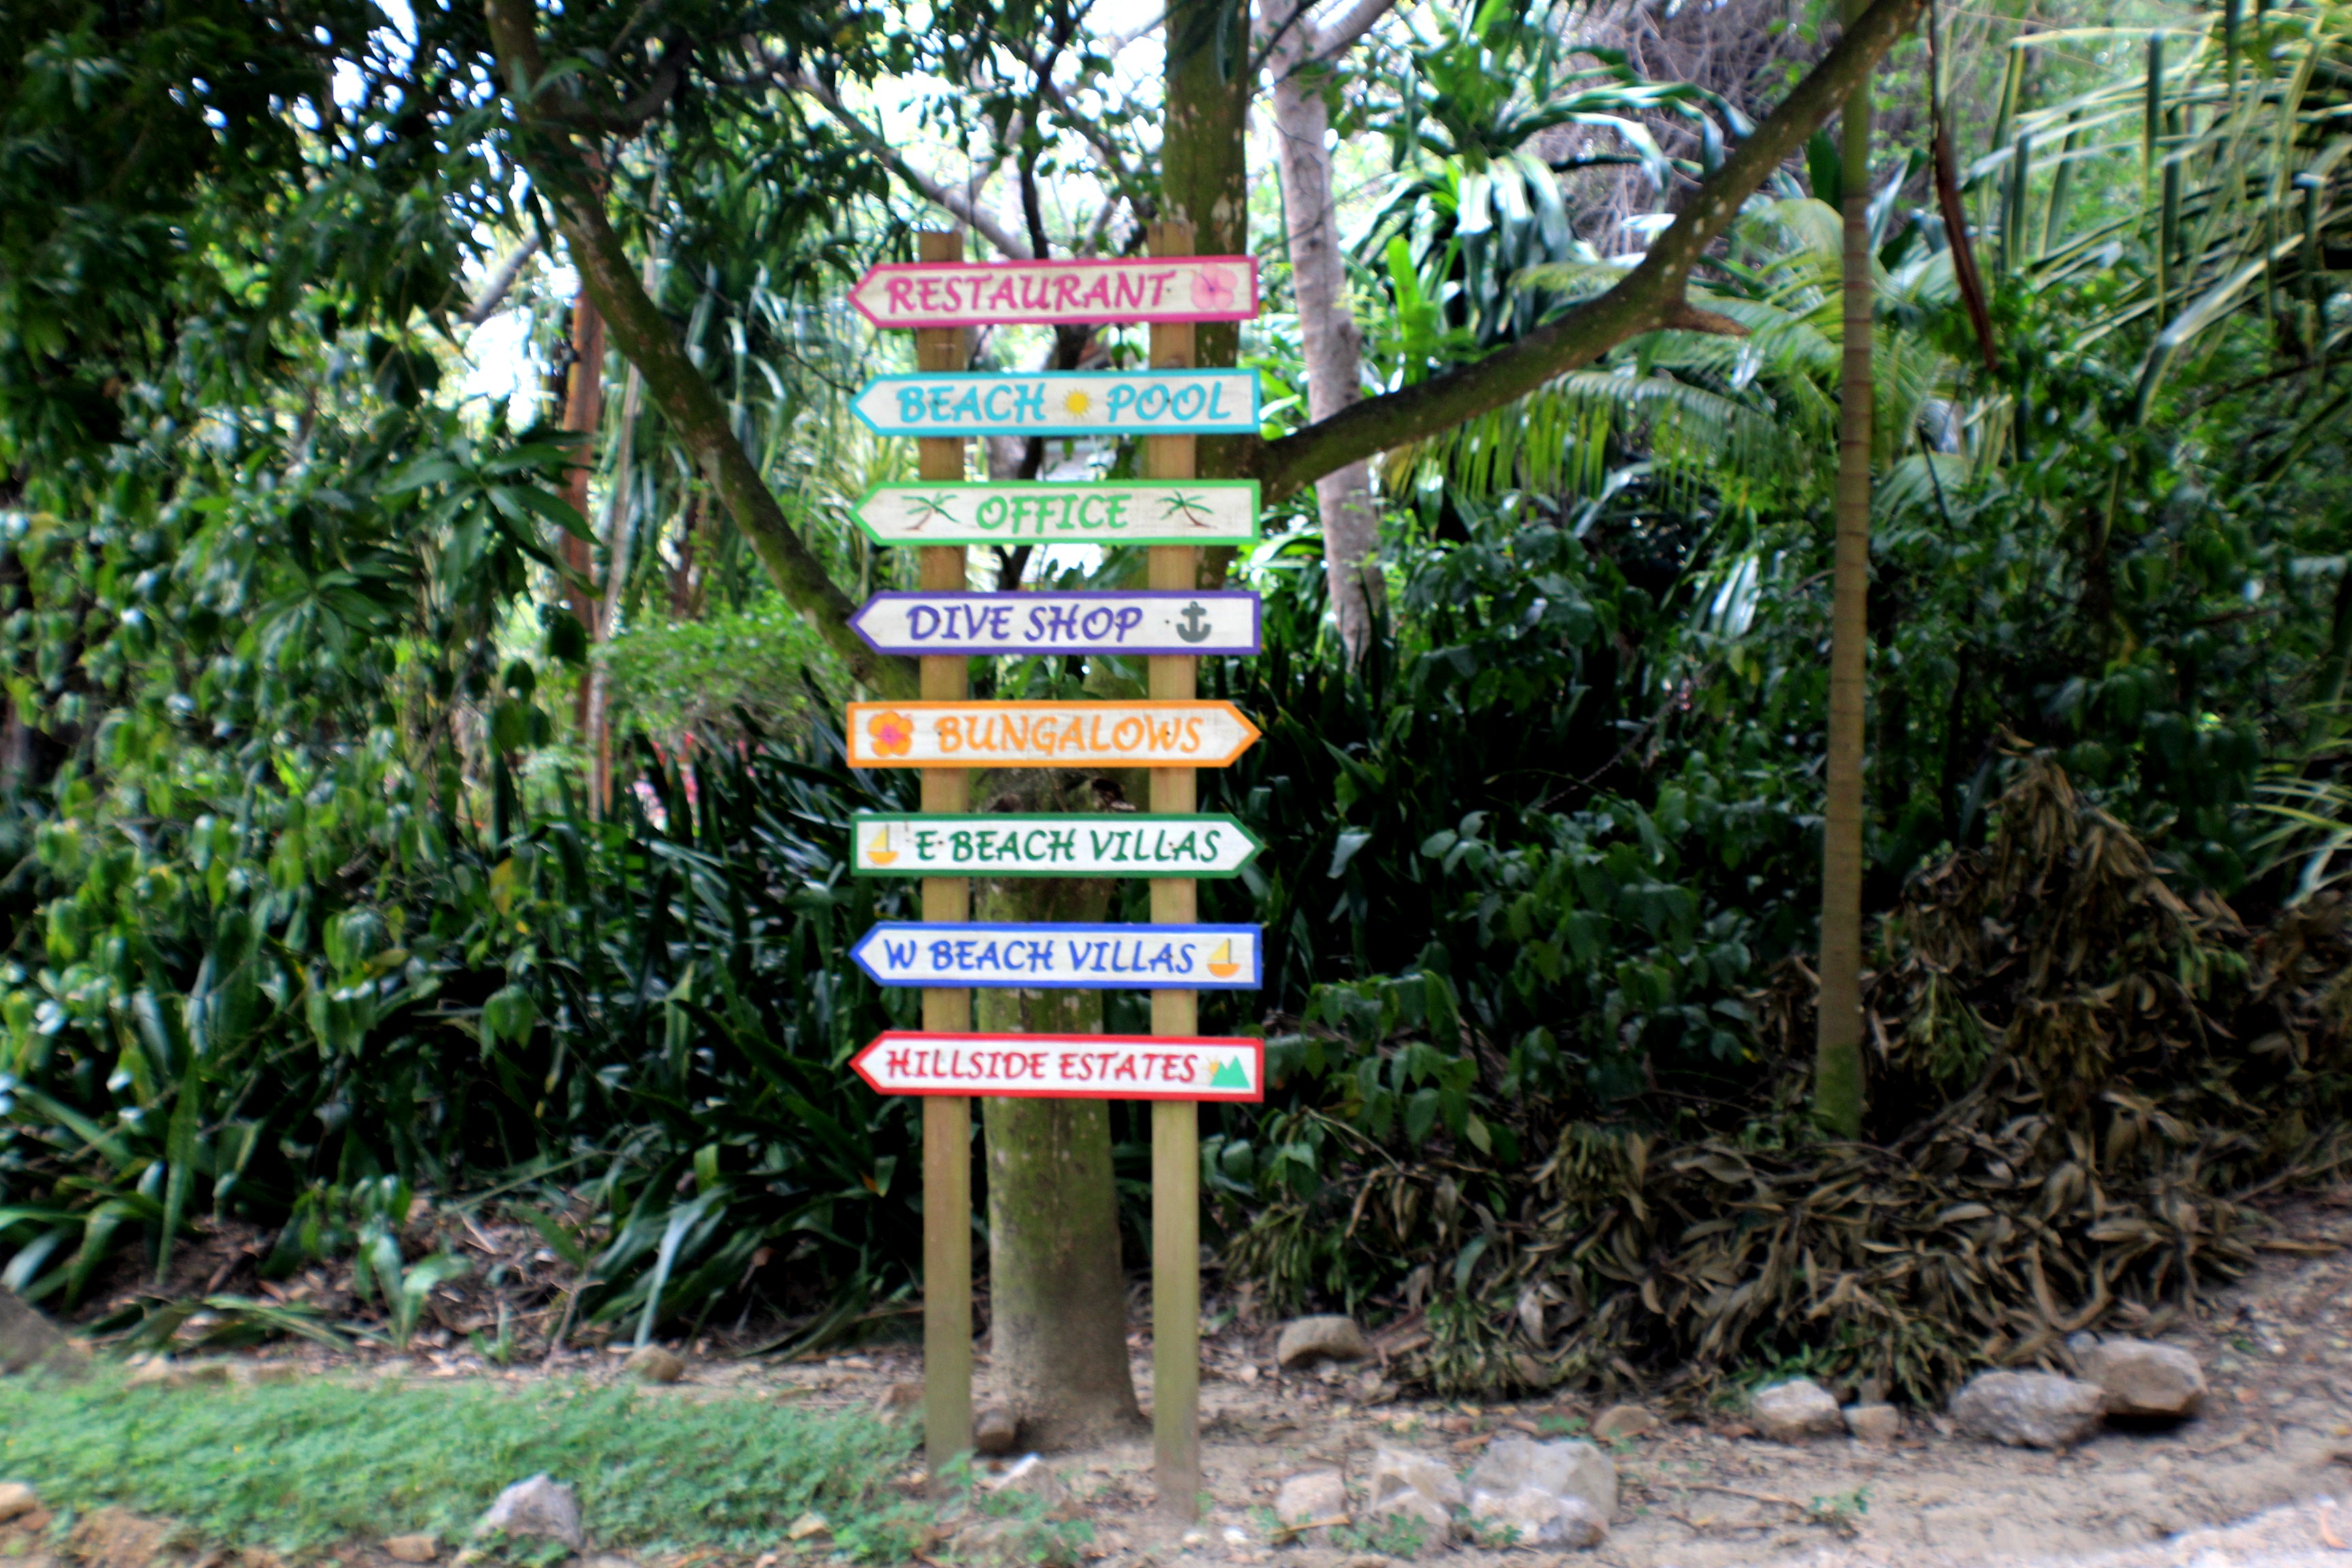 One of many sign boards